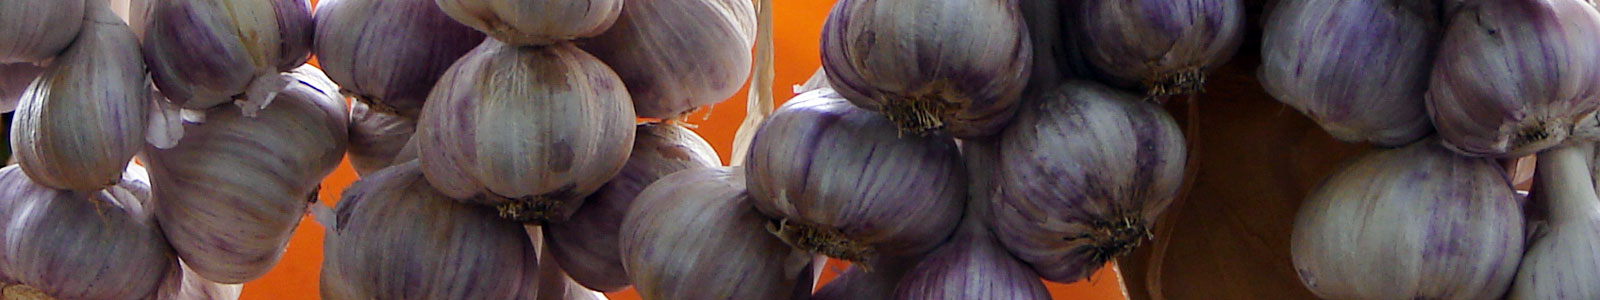 27th Annual Hills Garlic Festival